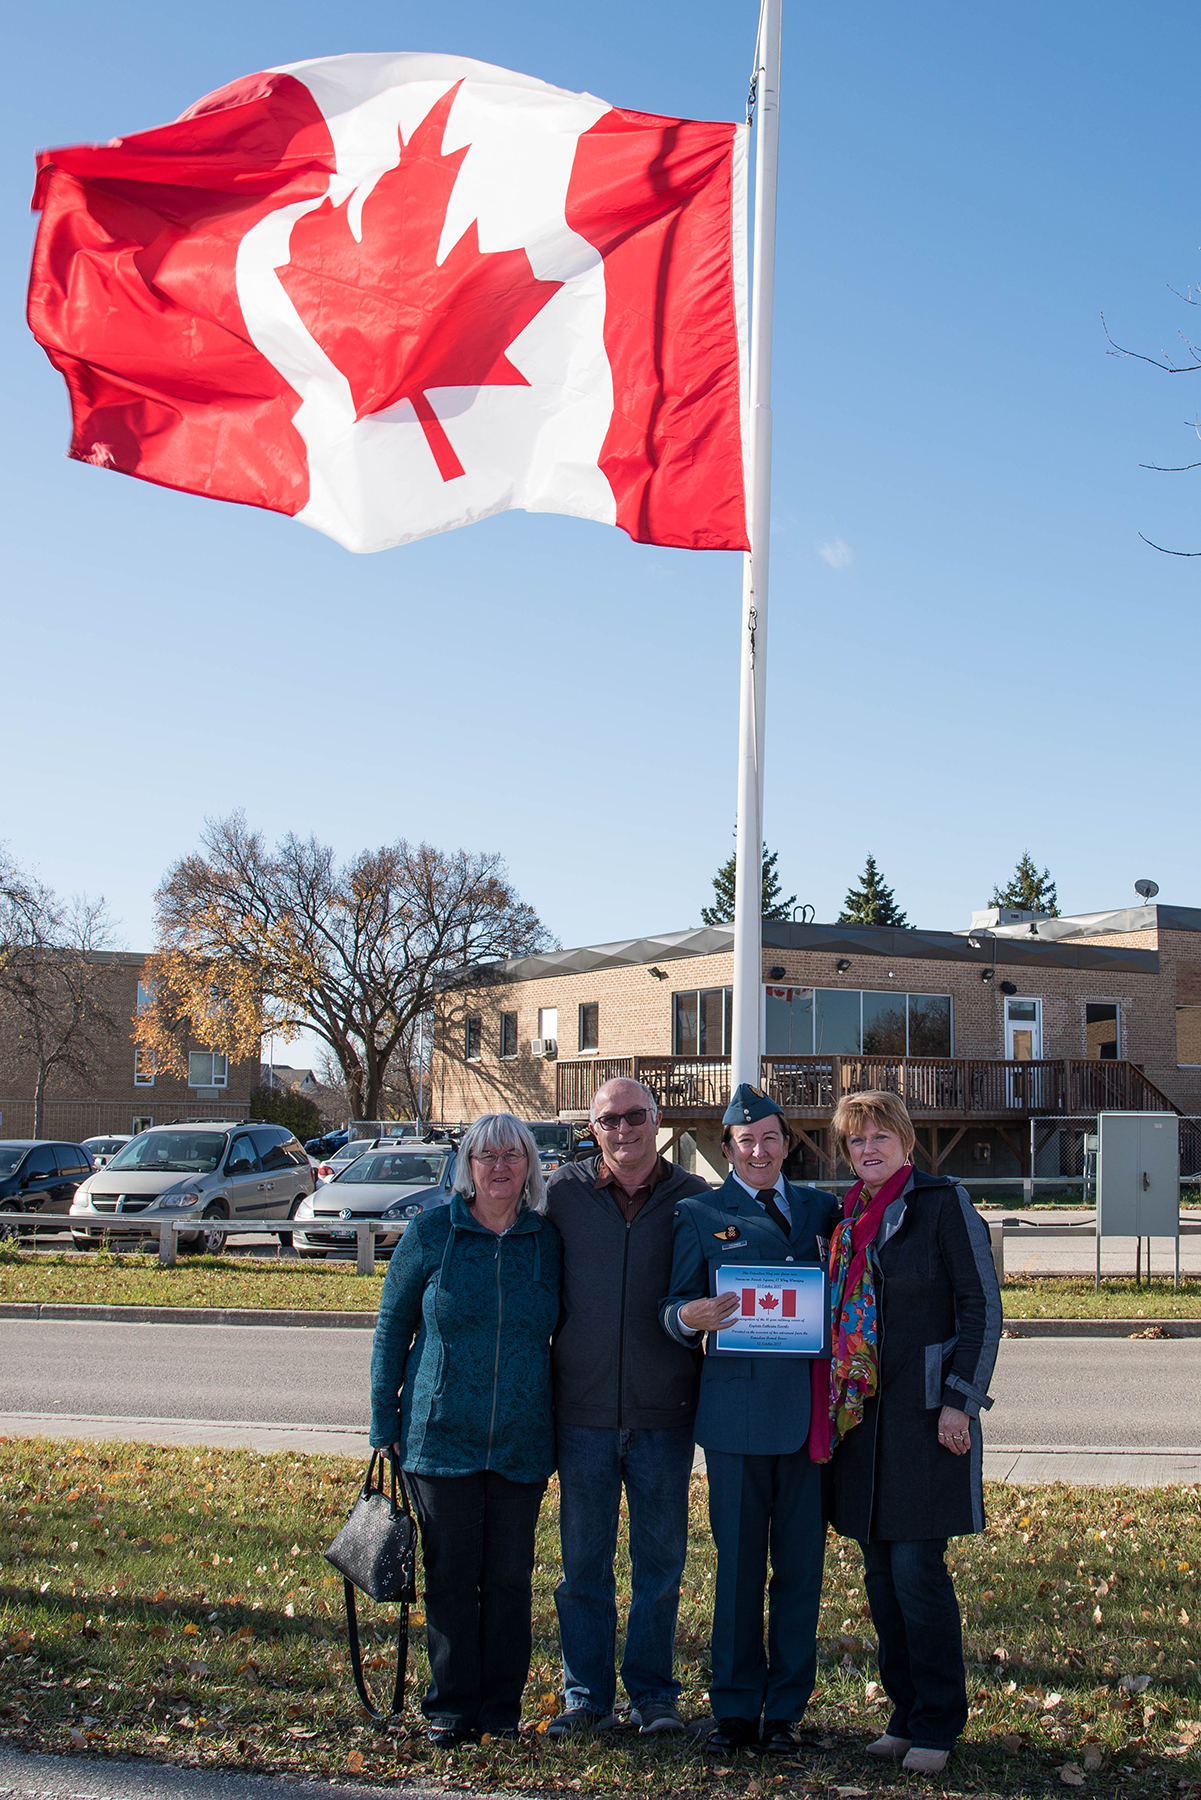 On October 13, 2017, her last day in uniform, Captain Cathy Coombs gathers with her husband and sisters under her raised flag at 17 Wing Winnipeg. From left, Rita Pierre, Alan Coombs, Captain Cathy Coombs and Susan Holland. PHOTO: Corporal Justin Ancelin, WG2017-0377-003